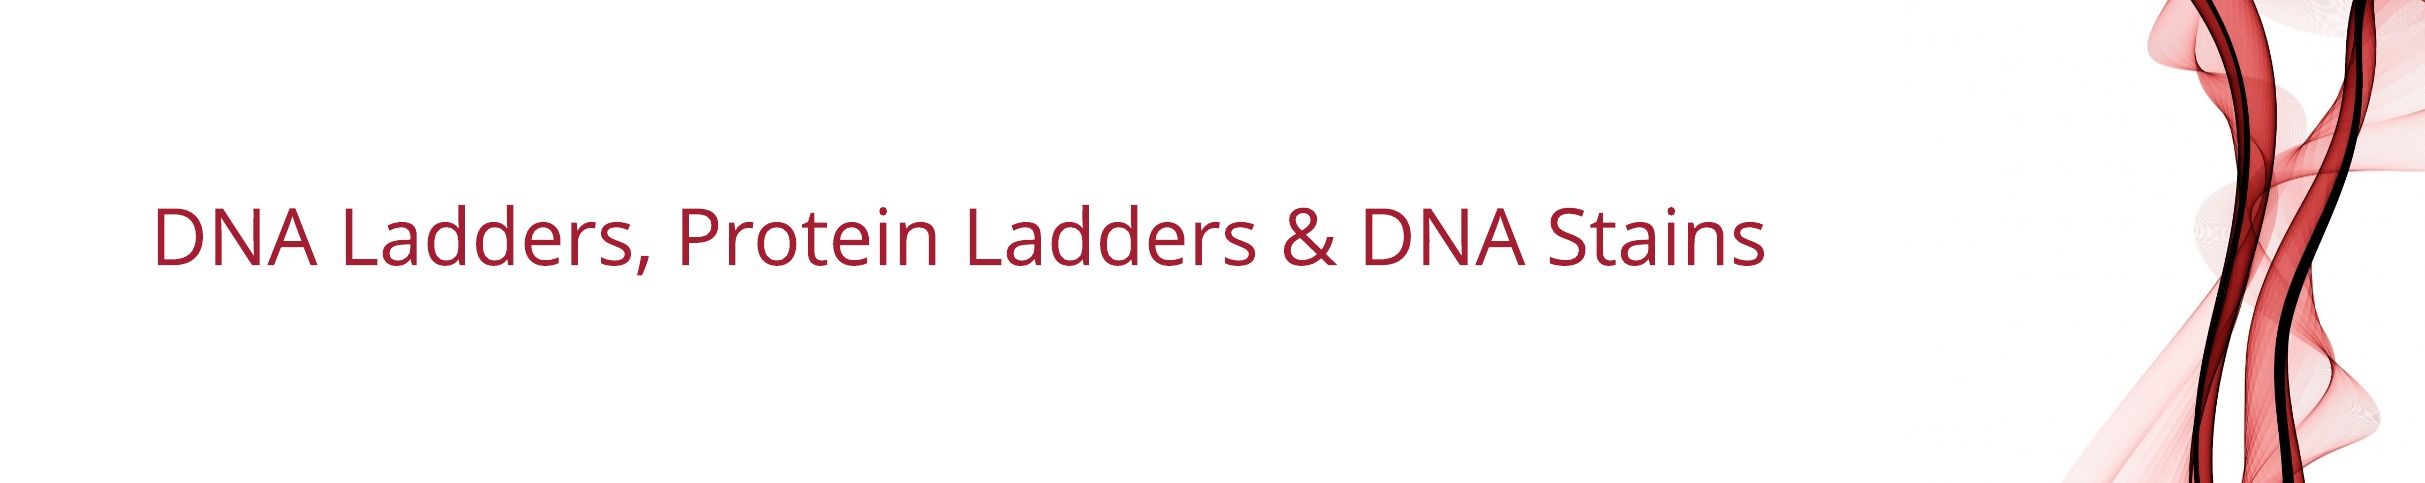 DNA ladders page